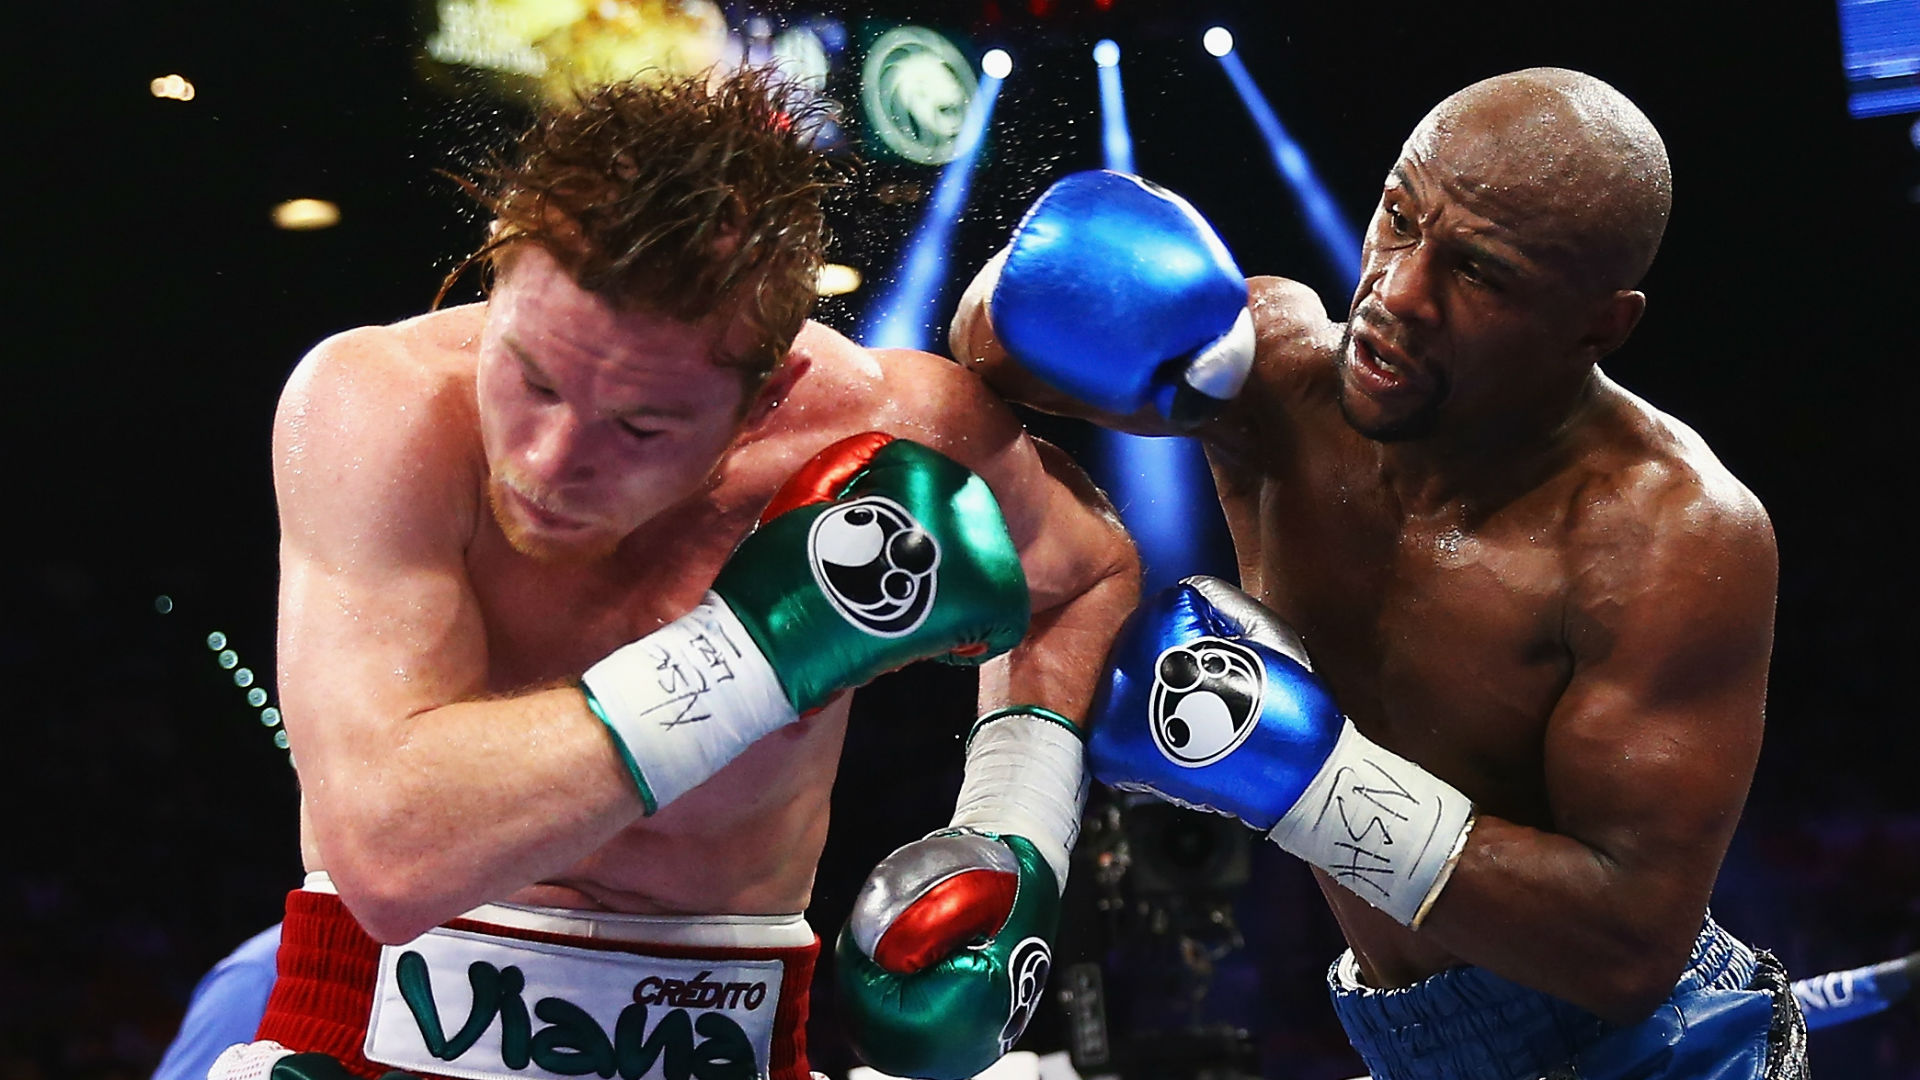 Canelo Alvarez welcomes Floyd Mayweather rematch